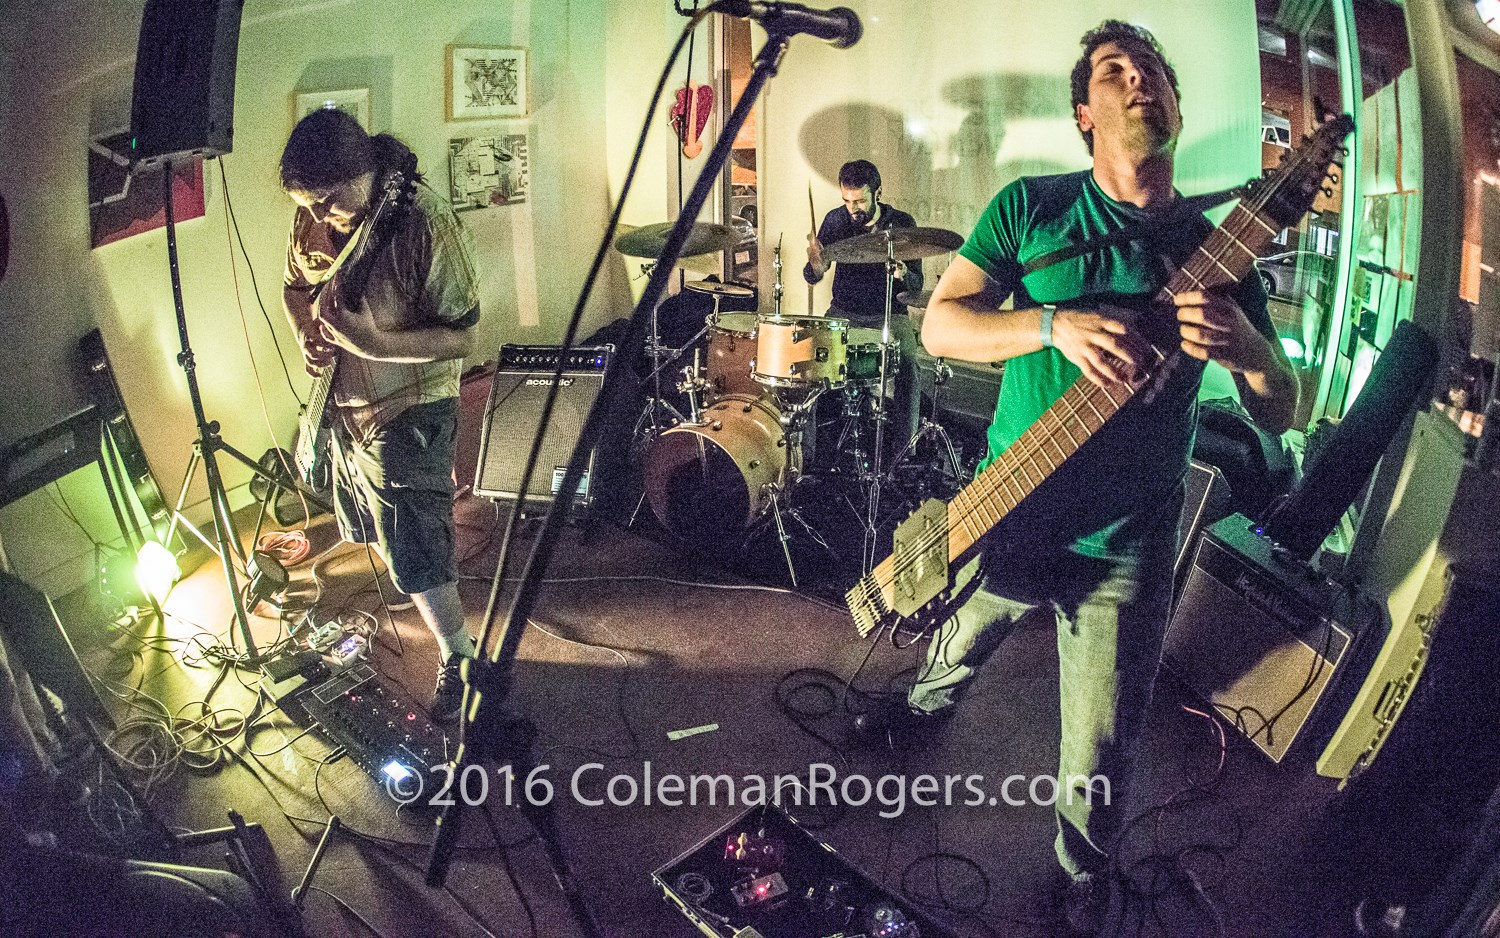 Album release show at unchARTed Gallery in Lowell, MA. By Coleman Rodgers